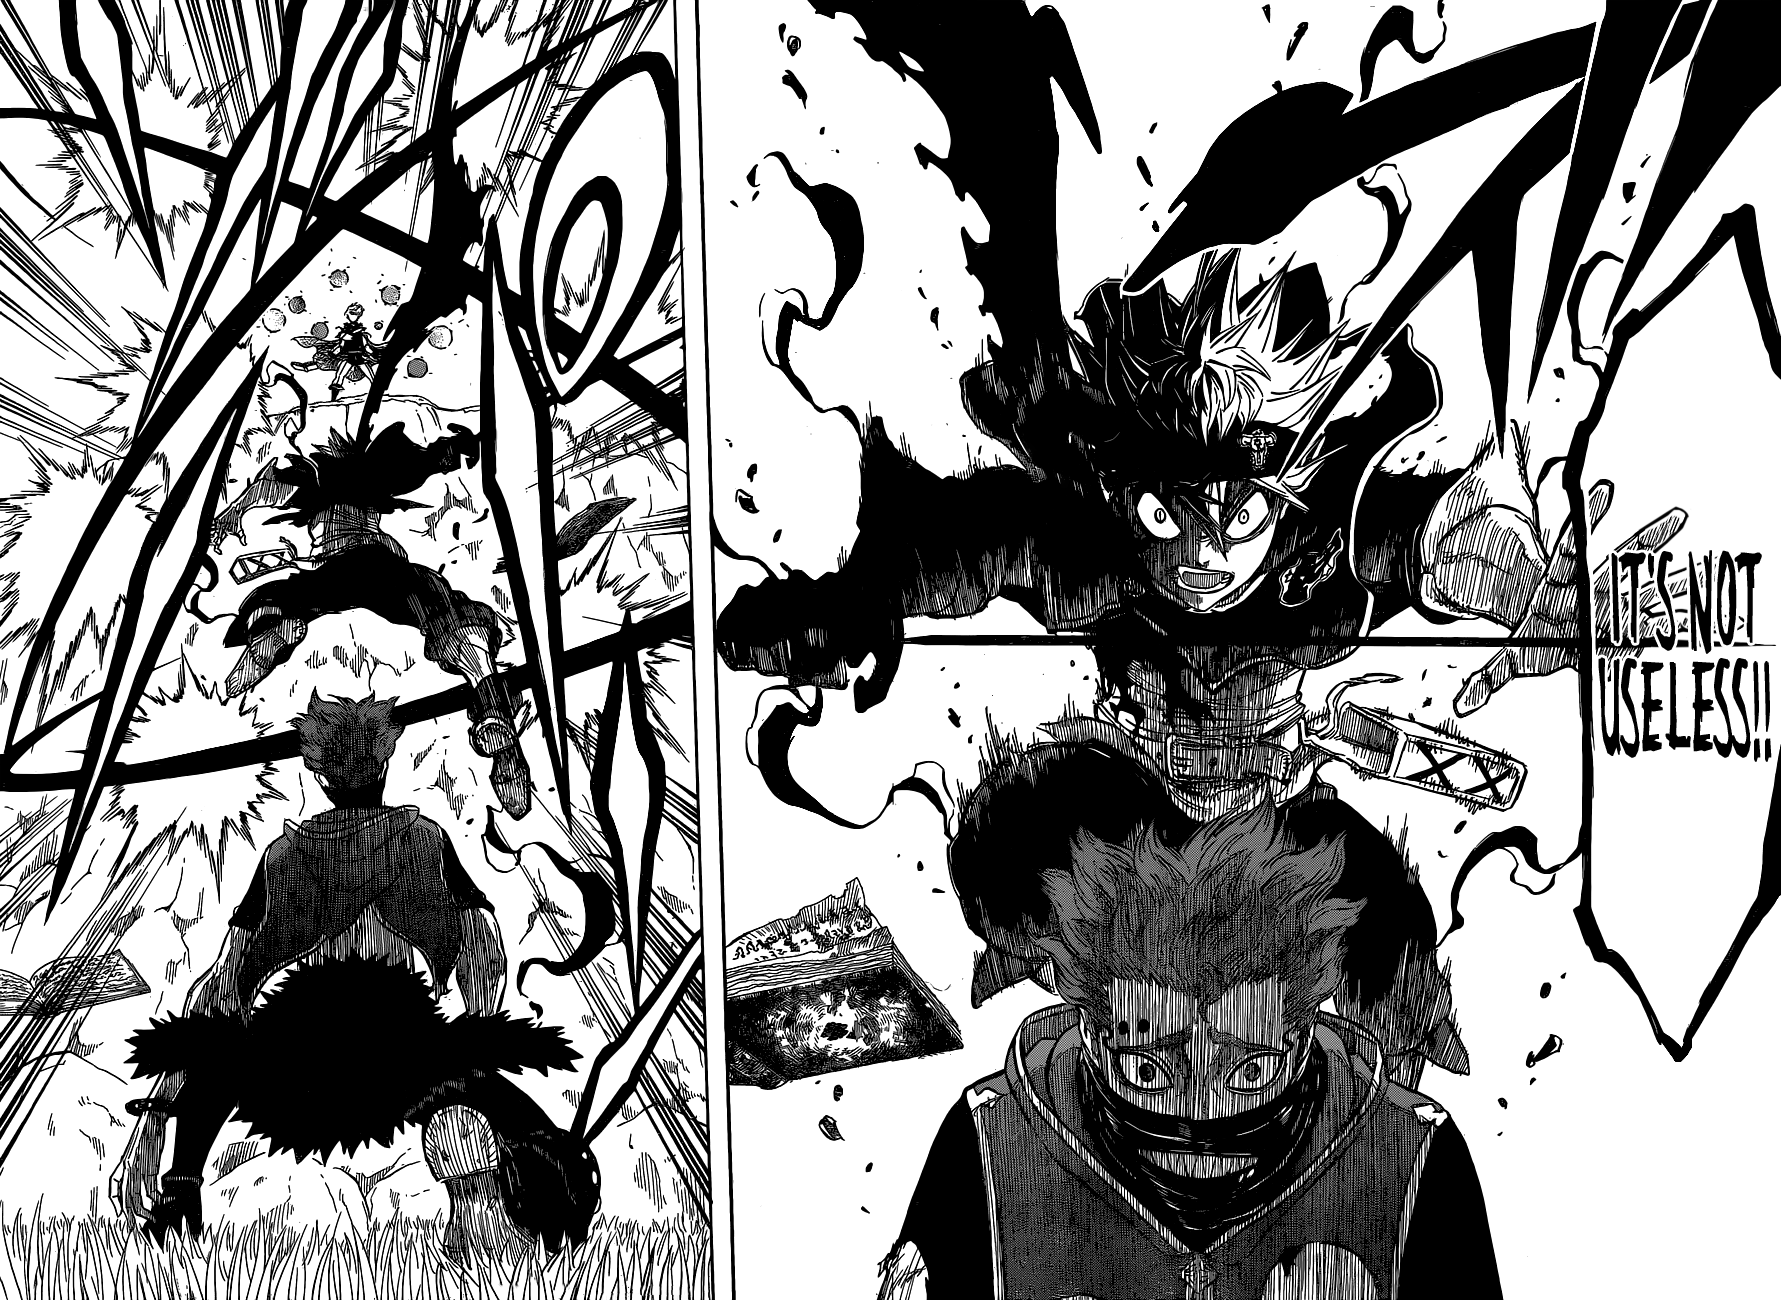 Black Clover Chapter 284: is all set to release next week. The manga was supposed to release earlier but it was delayed due to production reasons